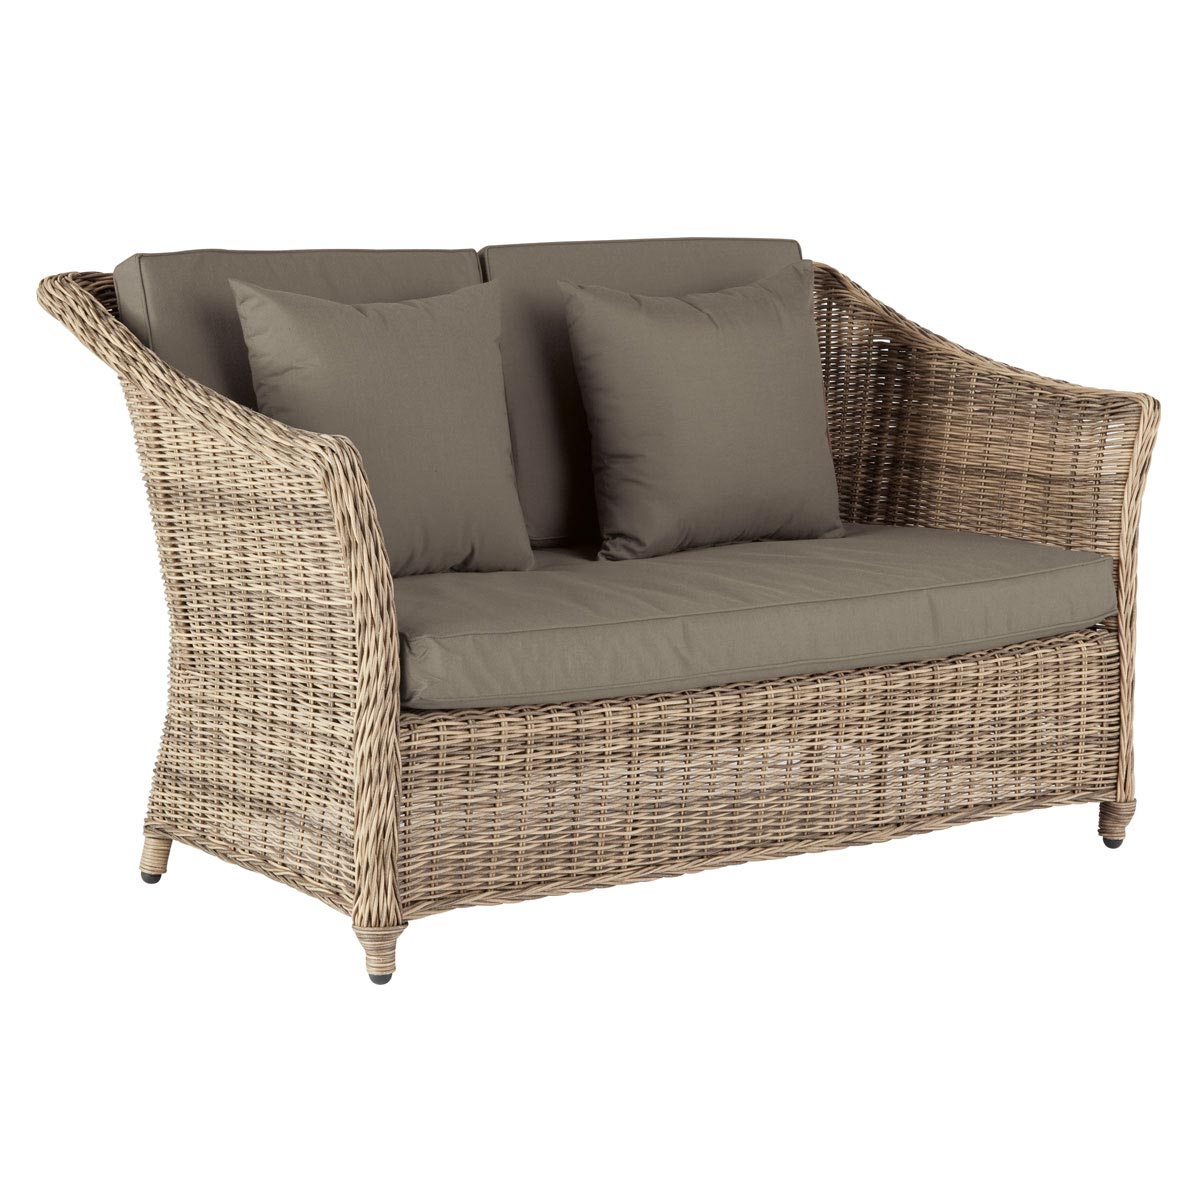 2 Seater Rattan Sofa Uk Buying The Best Small Inexpensive Loveseats Couch And Sofa